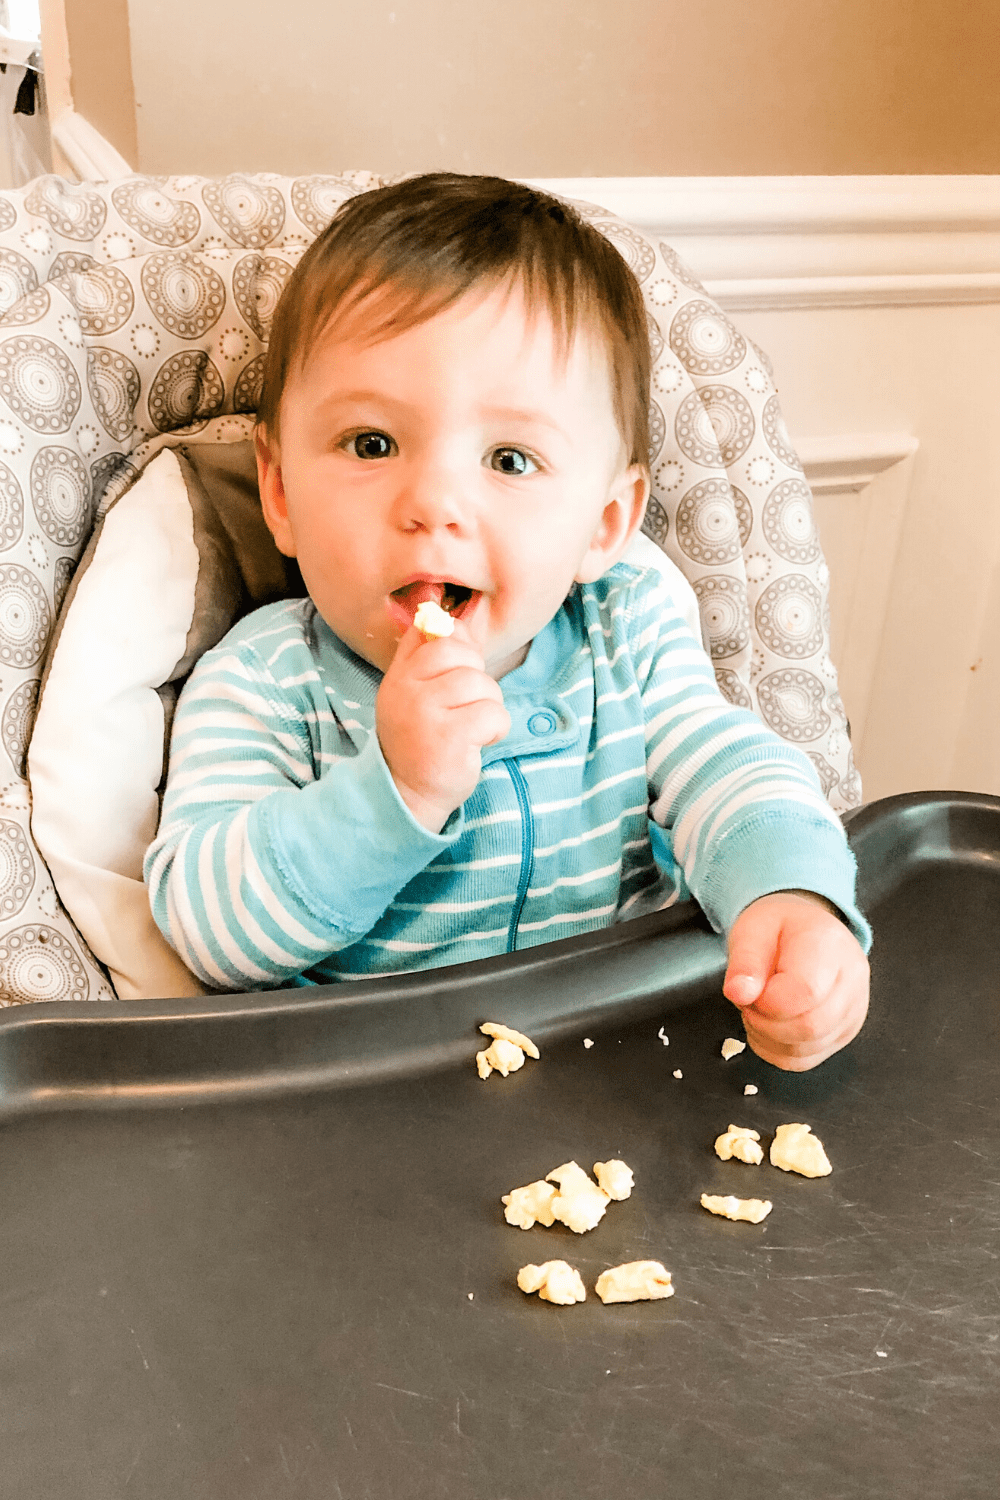 Baby Led Weaning Terrified Me. Here are the Tips That Helped